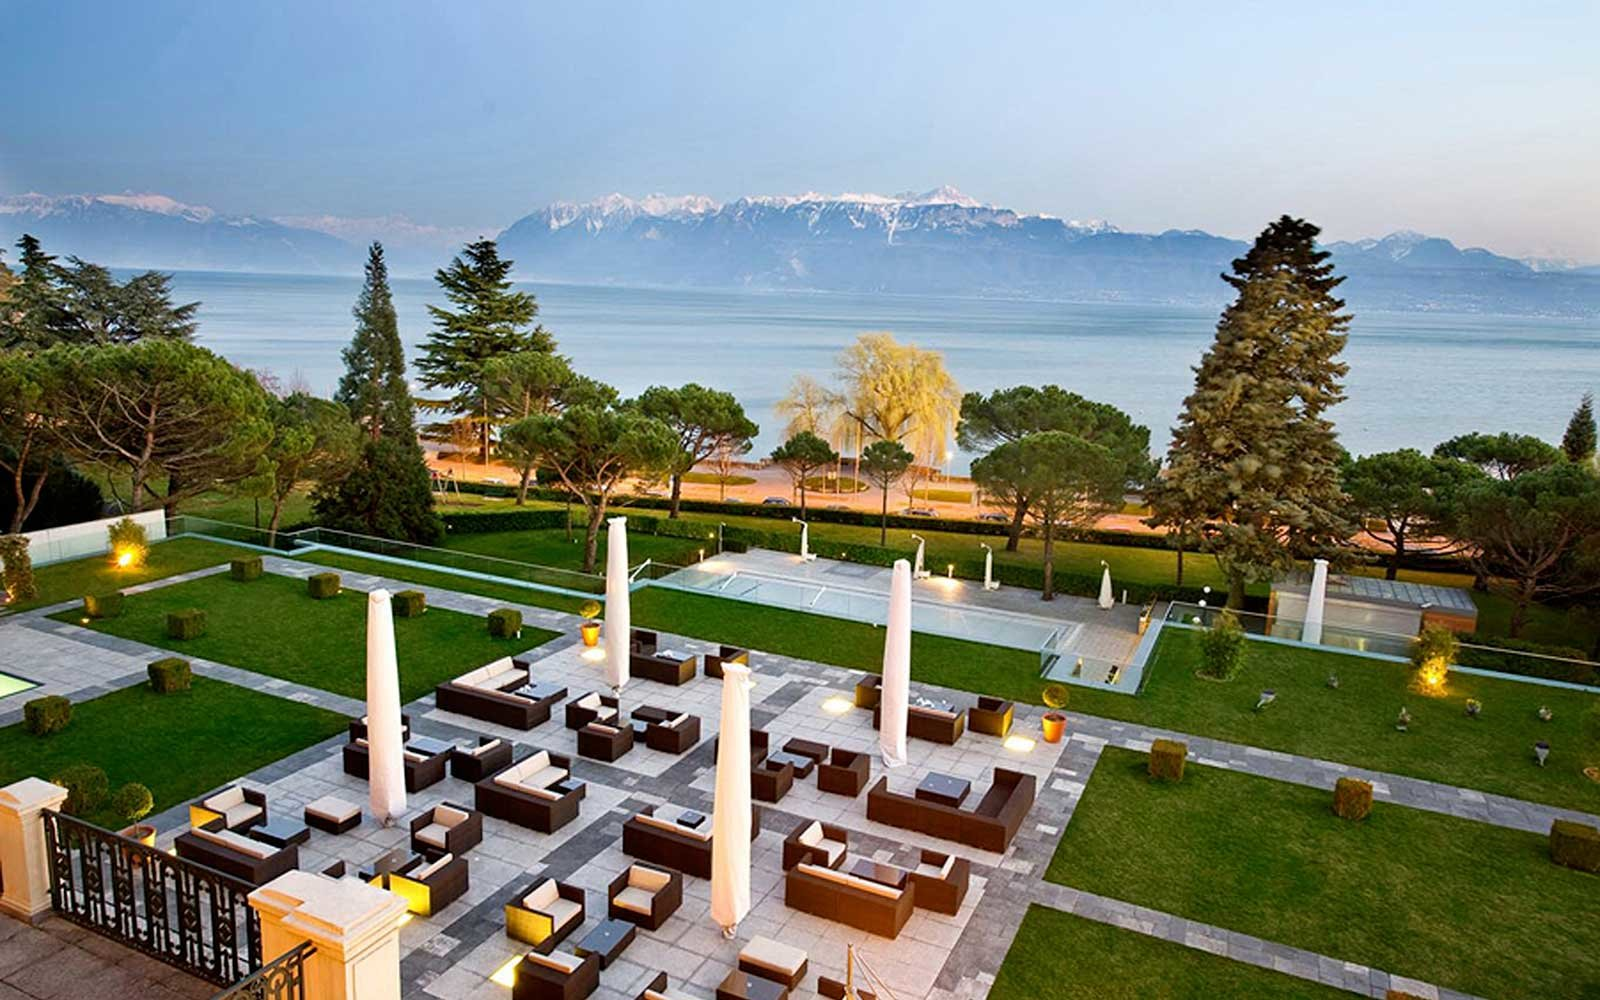 5. Beau-Rivage Palace, Lausanne, Switzerland